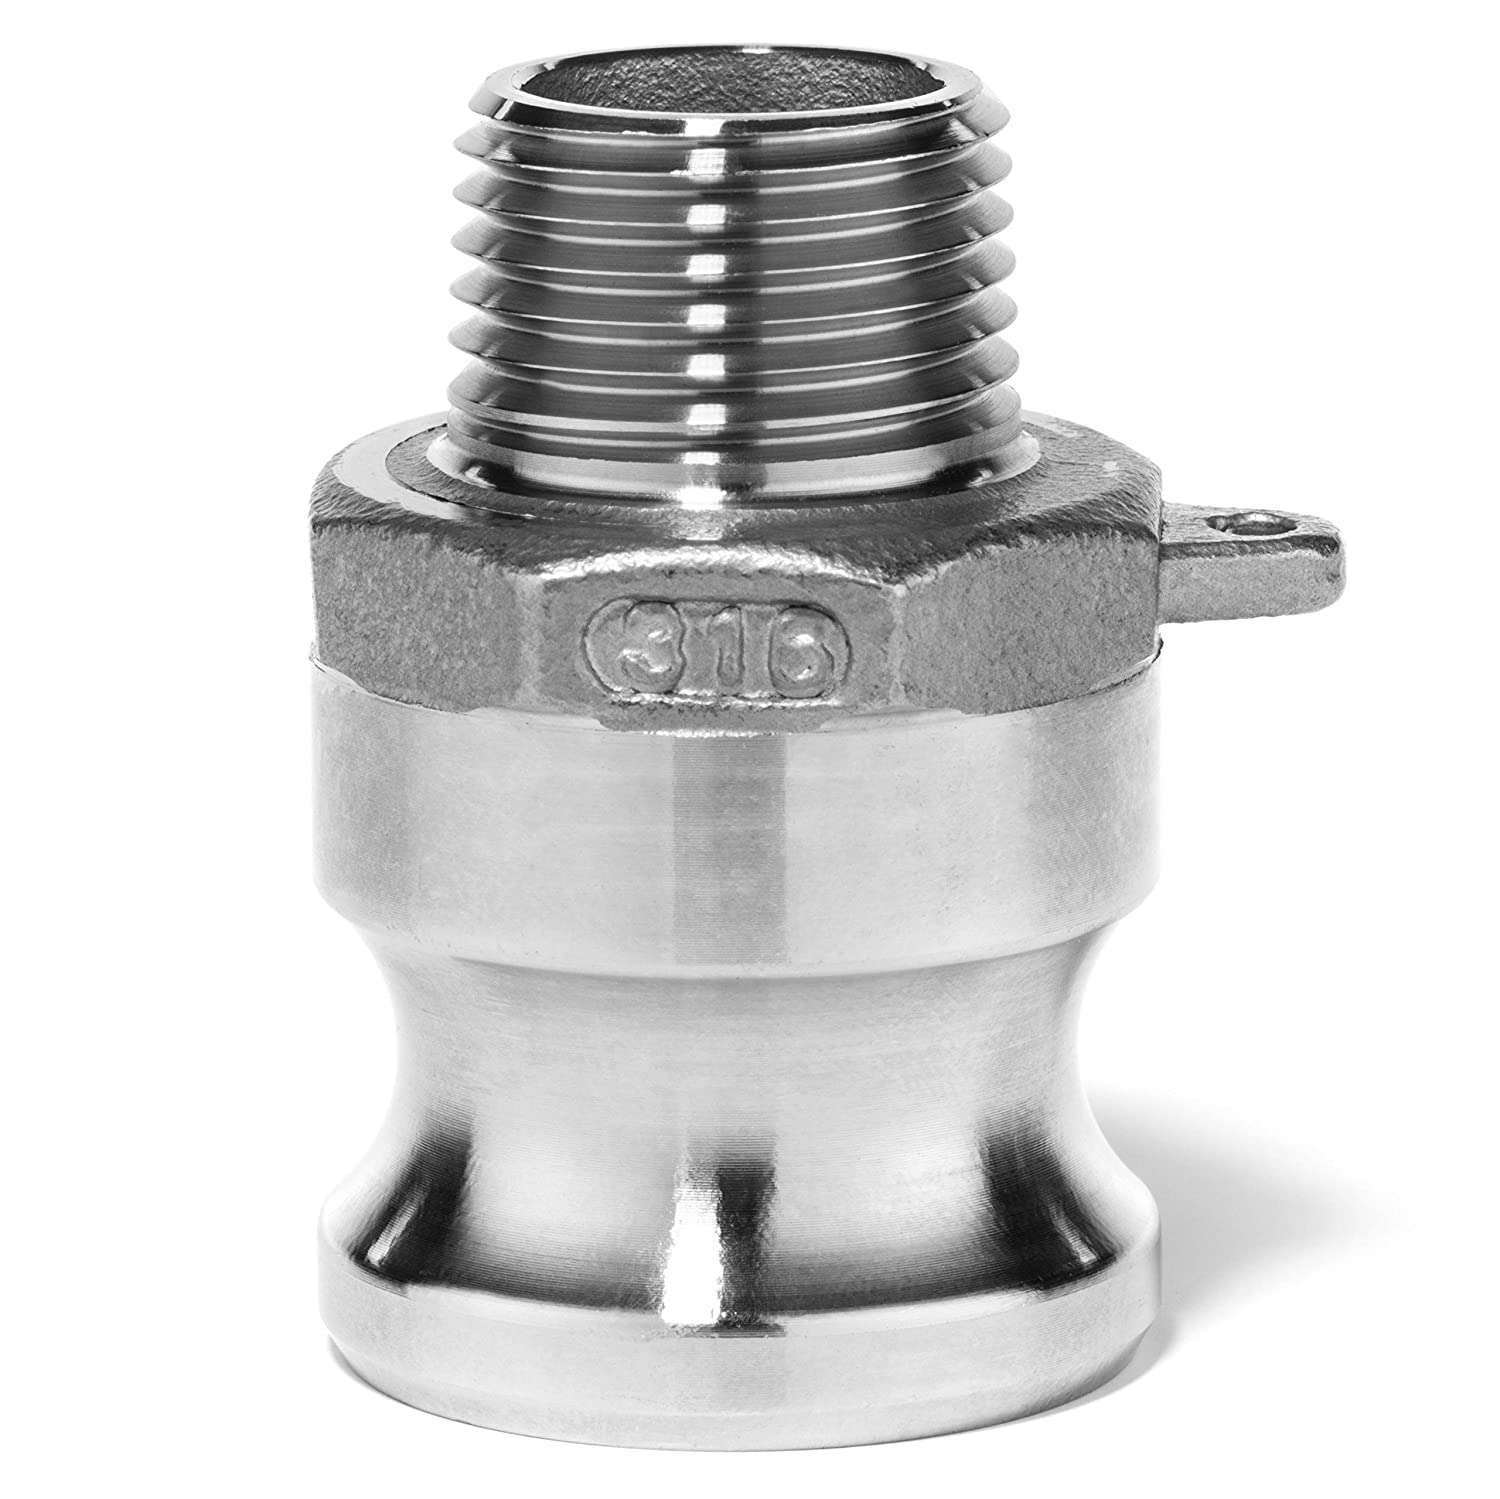 Type F 6 Adapter x 6 Male NPT USA SealingsCam and Groove Fitting 304 Stainless Steel